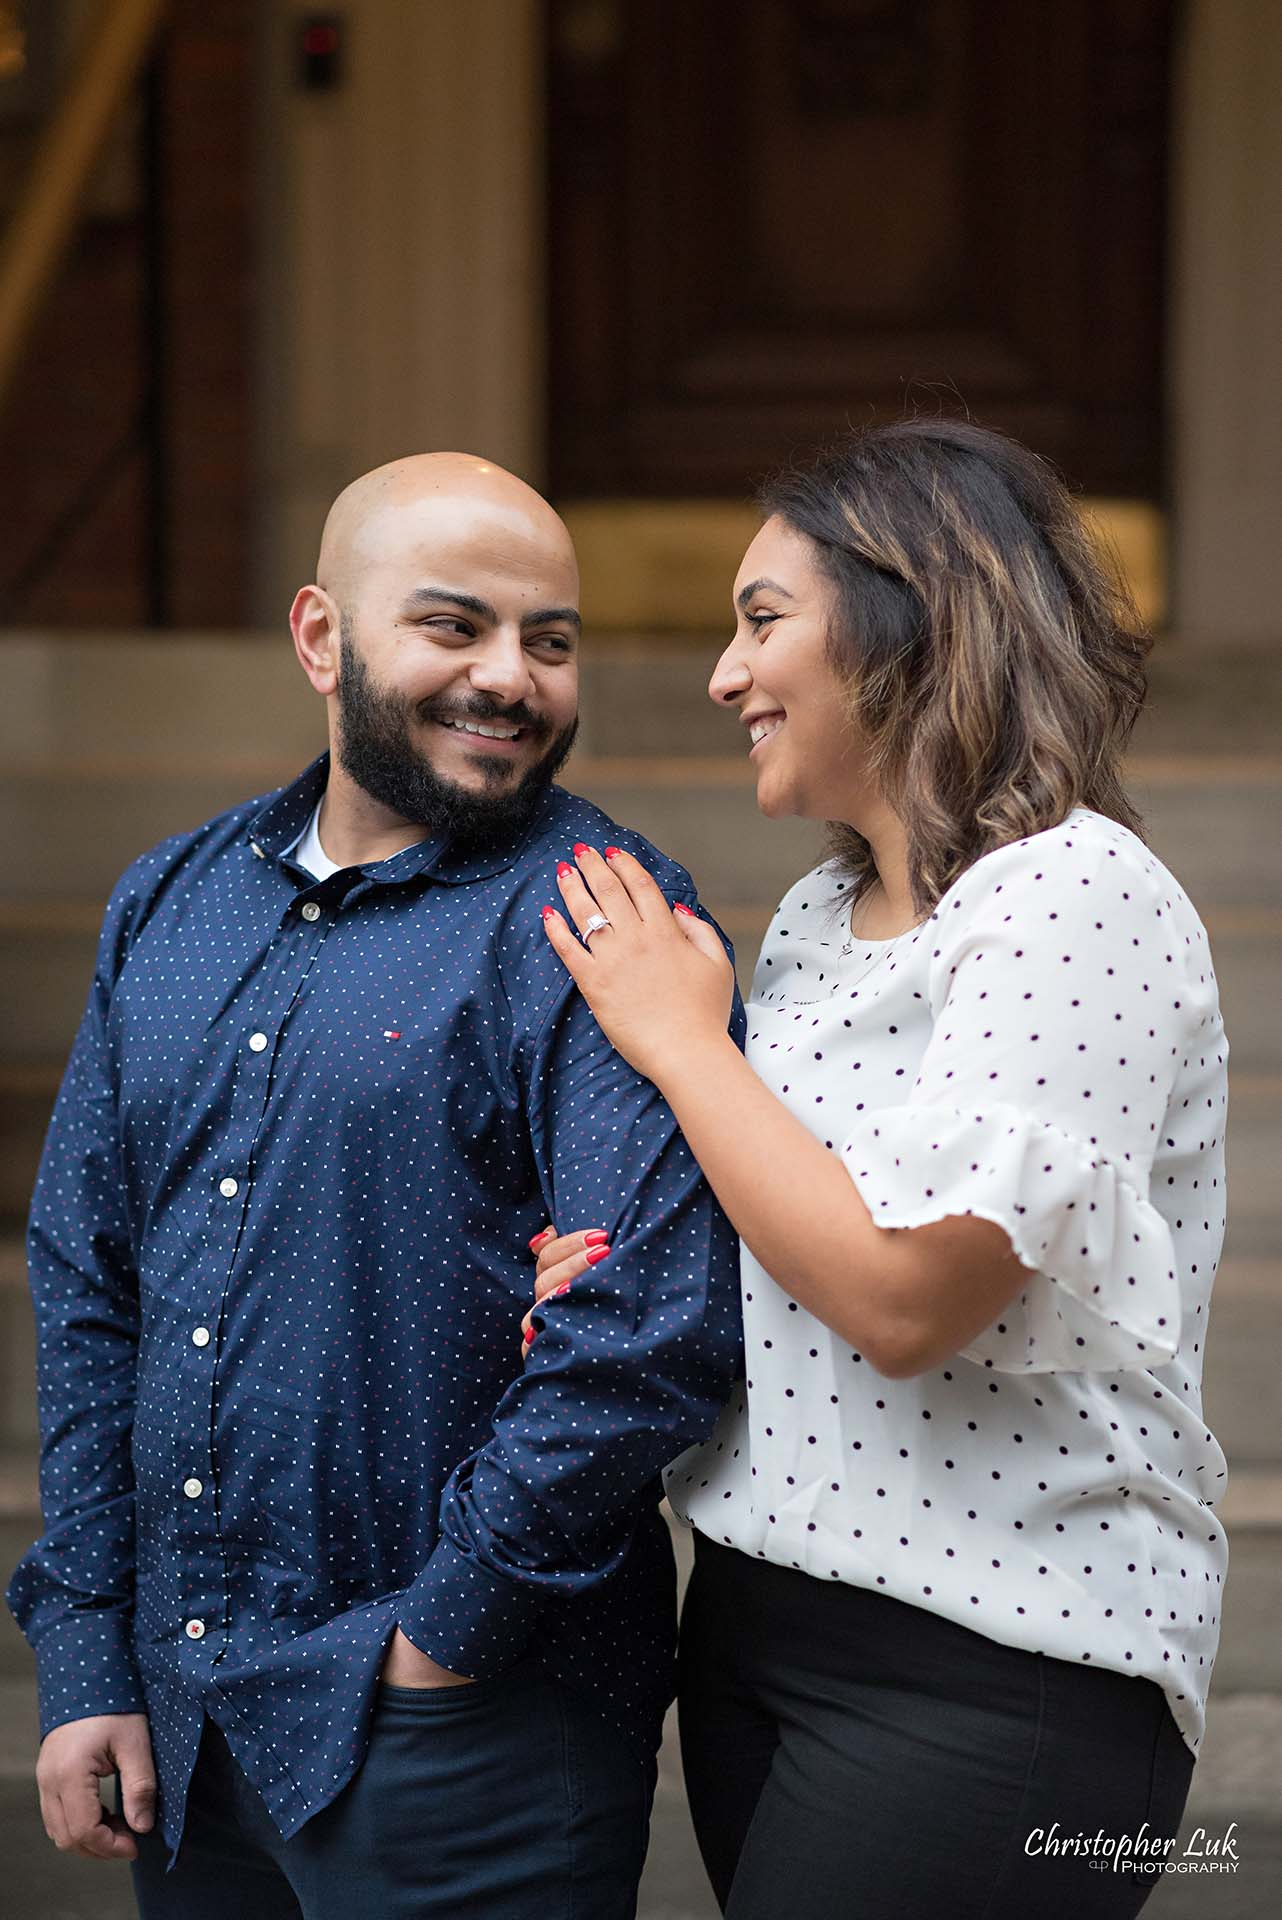 Christopher Luk Toronto Wedding Photographer - Toronto Osgoode Hall Surprise Proposal Engaged Engagement Will You Marry Me She Said Yes Natural Candid Photojournalistic - Fiancé Fiancée Bride Groom Hug Arm